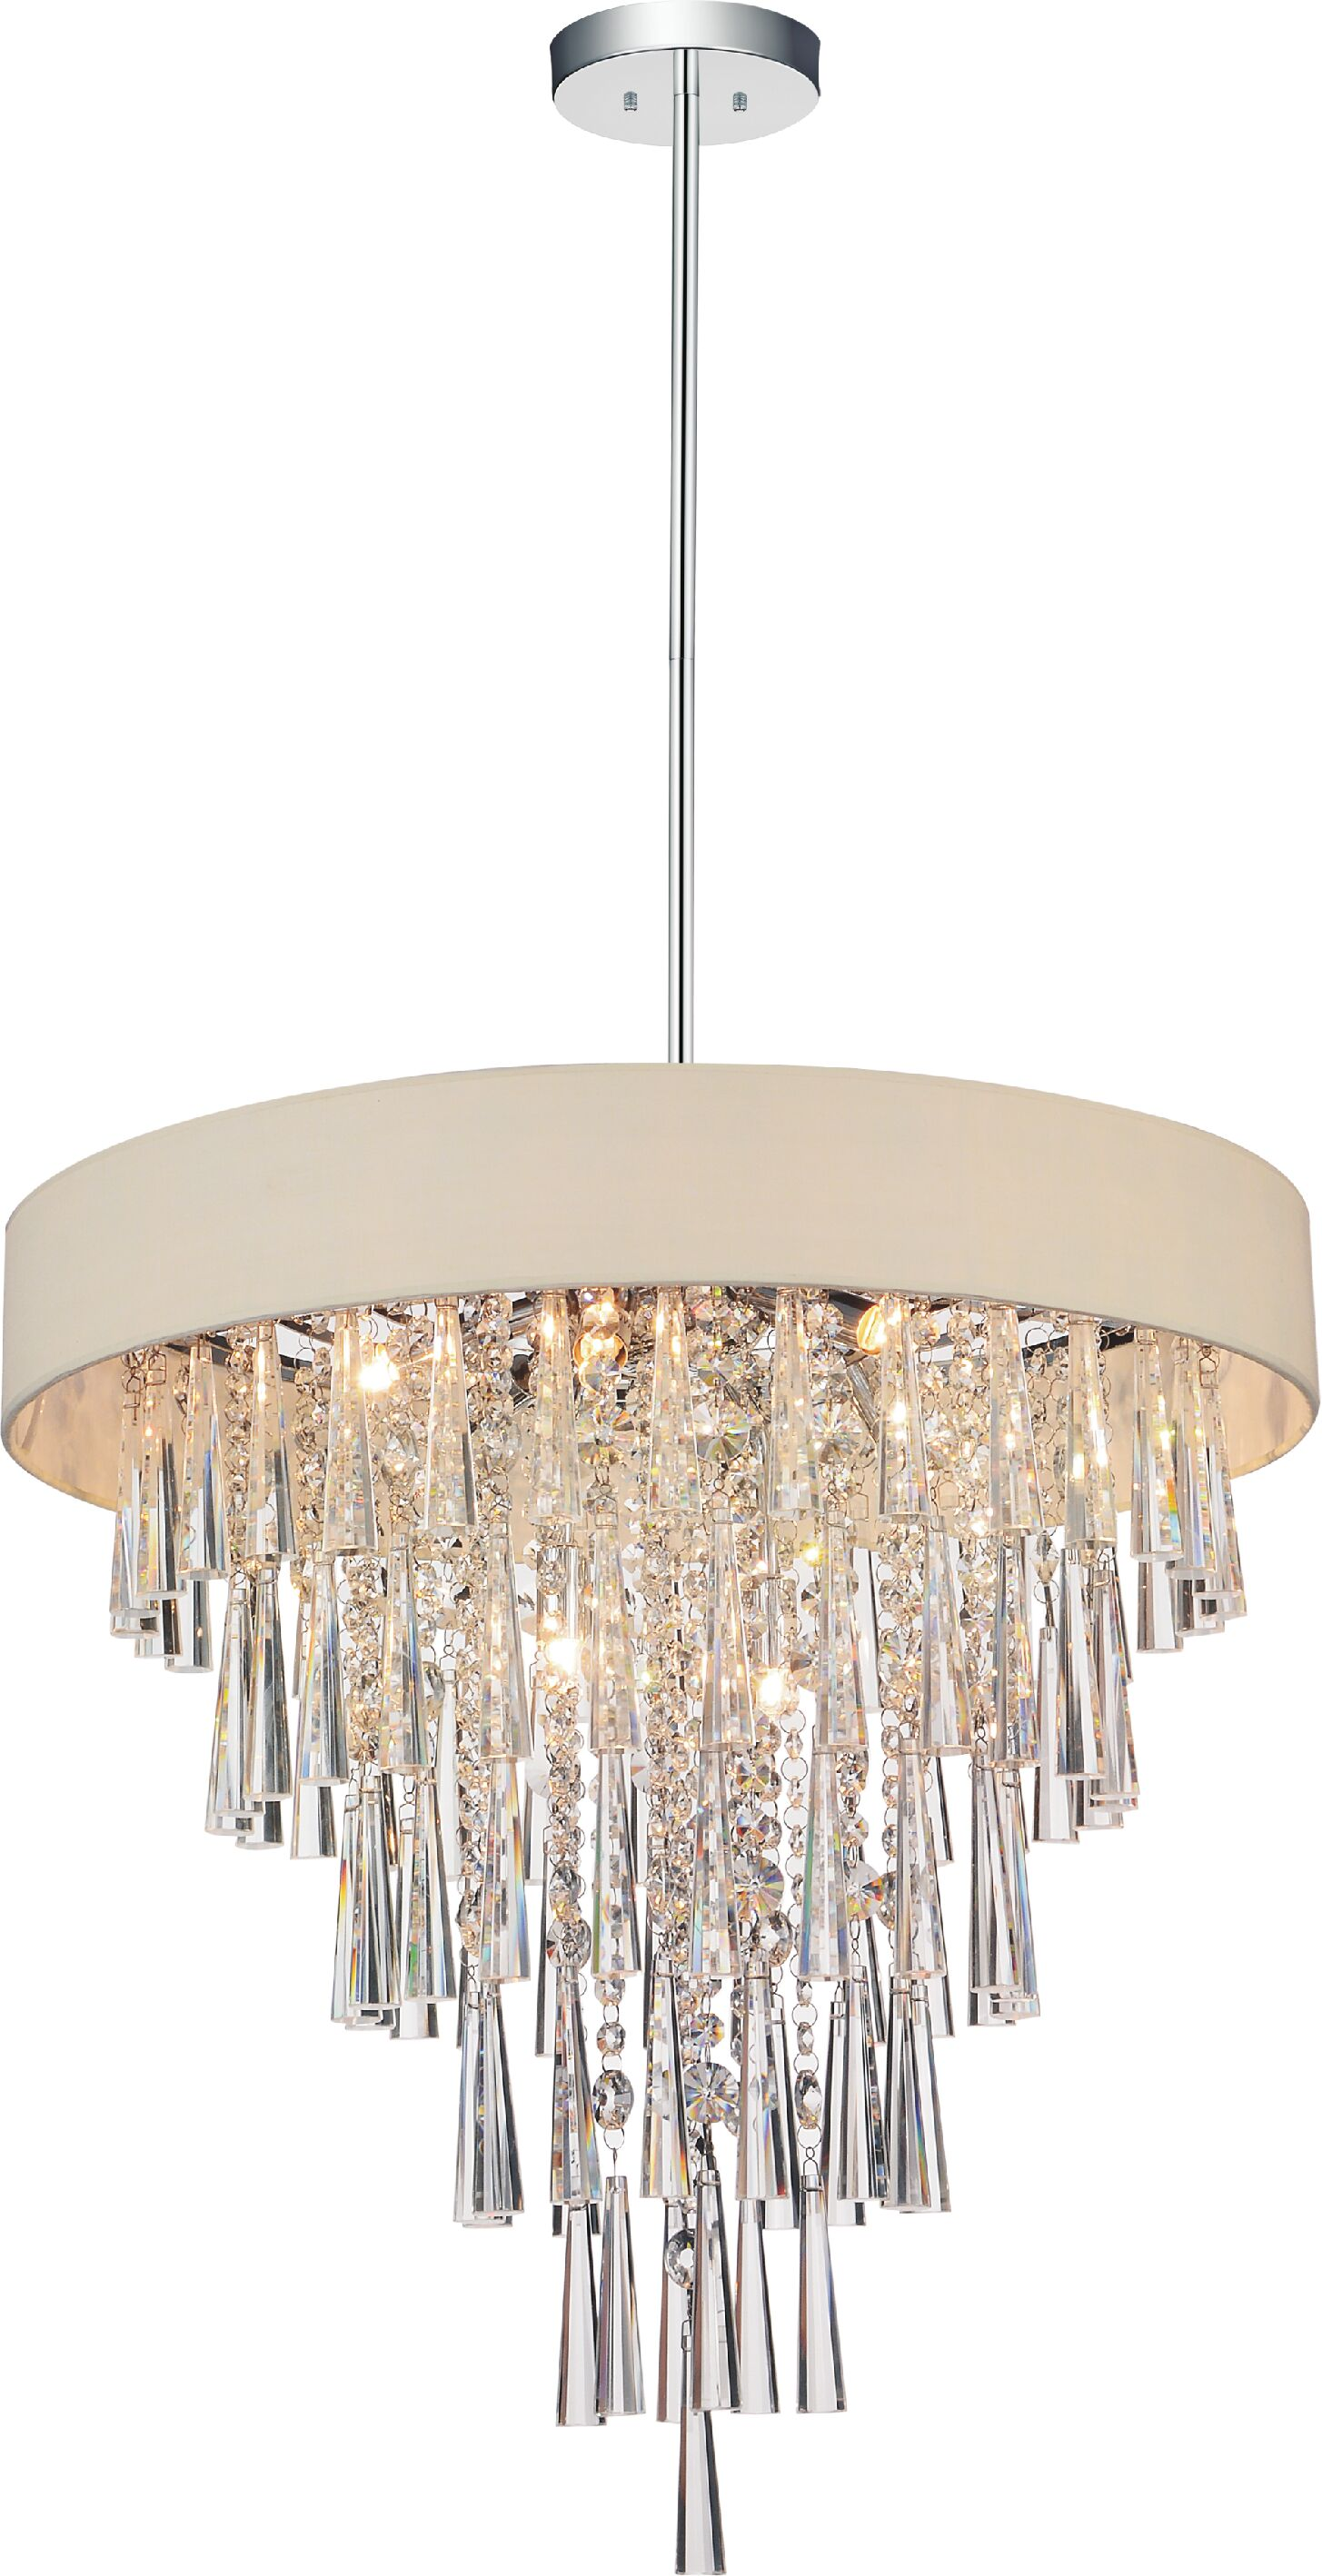 Chenai 8-Light Drum Chandelier Finish: Beige